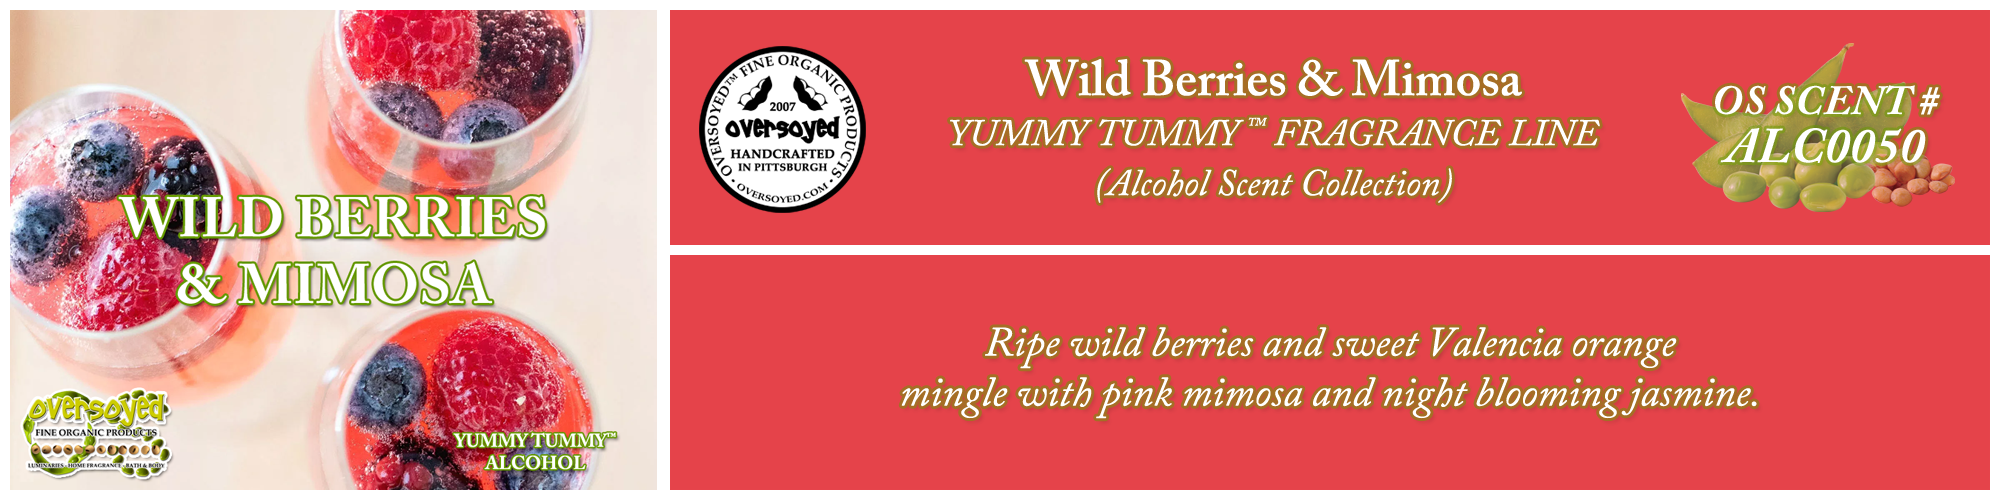 Wild Berries & Mimosa Handcrafted Products Collection